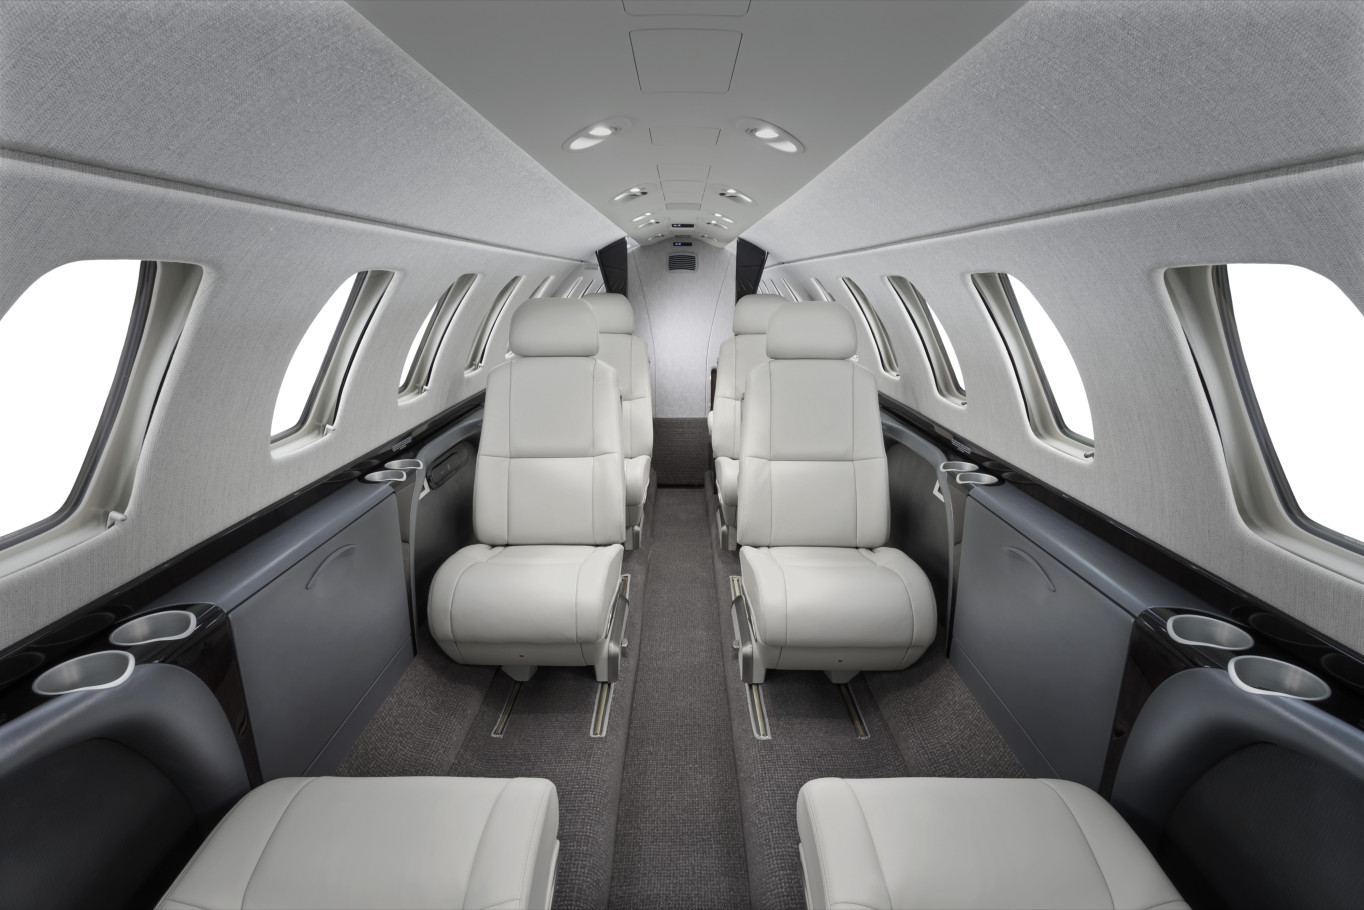 Citation_CJ3_Light-Jet_Legacy_Aviation_Private_Jet_NetJets_jet_charter_TEB_VNY_MIA_PBI_FRG_SFO_FLL_FXE_BED.jpg